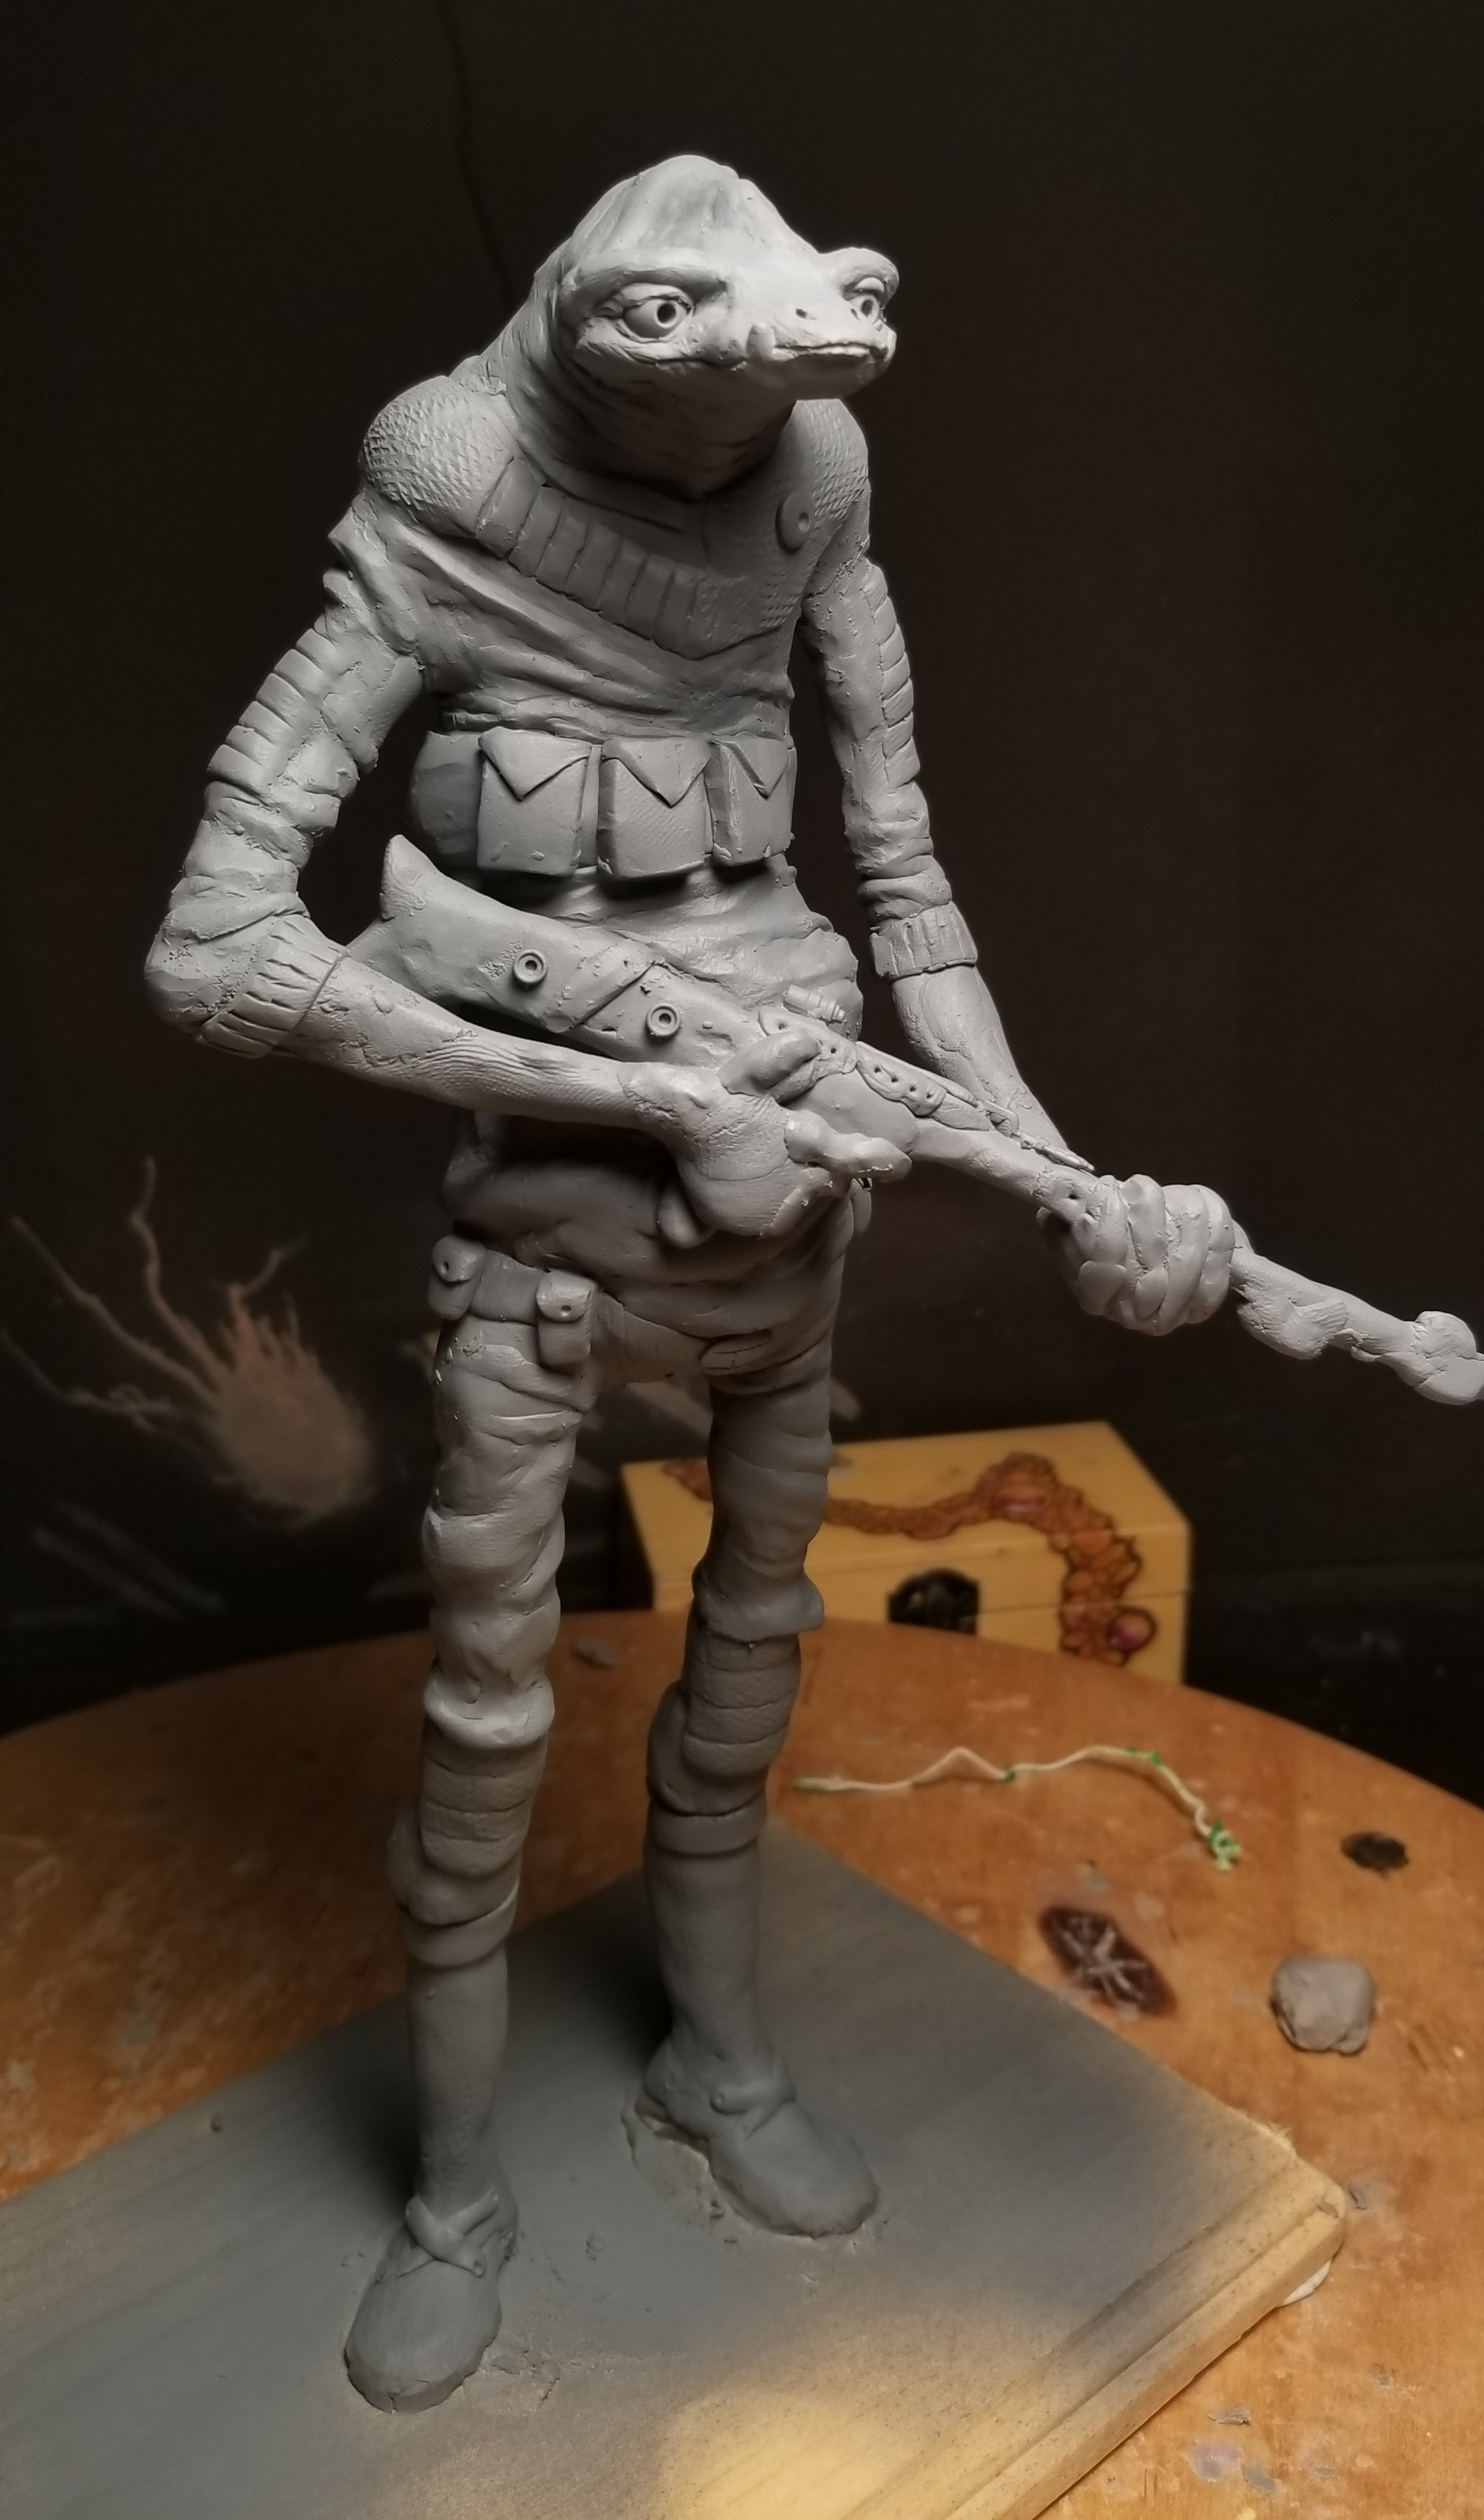 [OC] Bartök the Bounty Hunter (Star Wars character I made up and sculpted during this snowstorm)